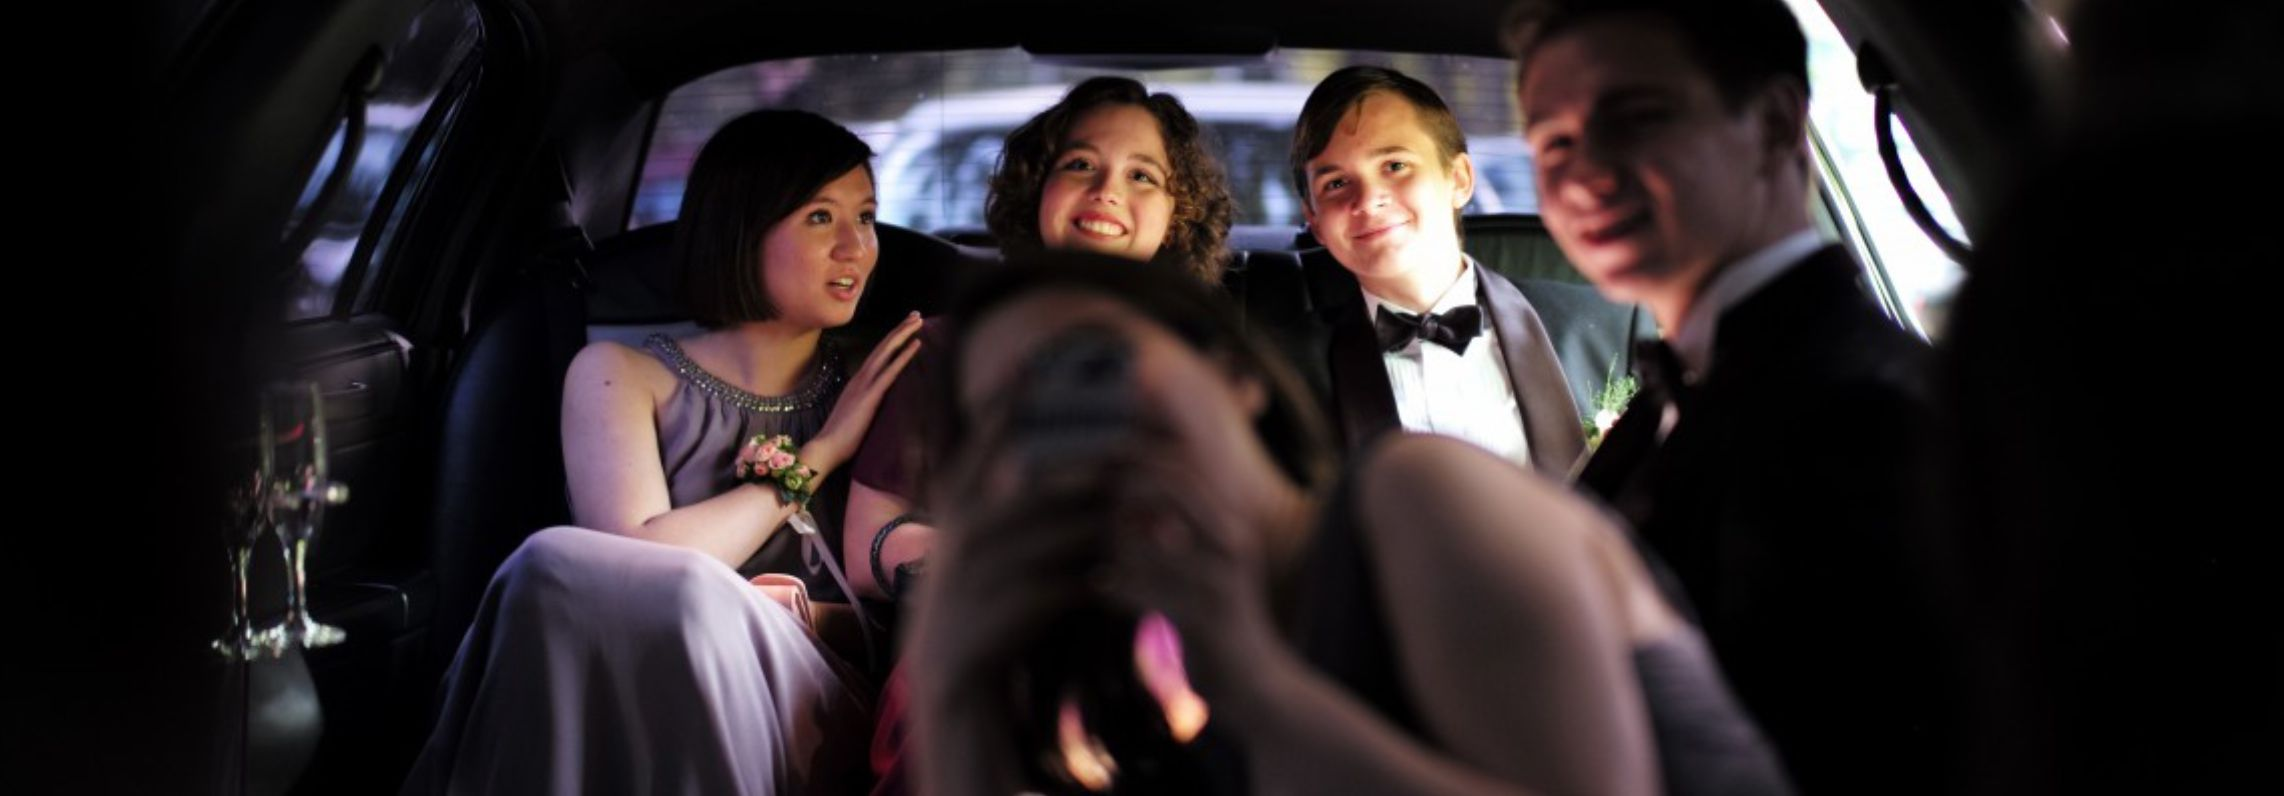 5 Reasons to Book A Prom Limo | Primo Limo in Raleigh NC